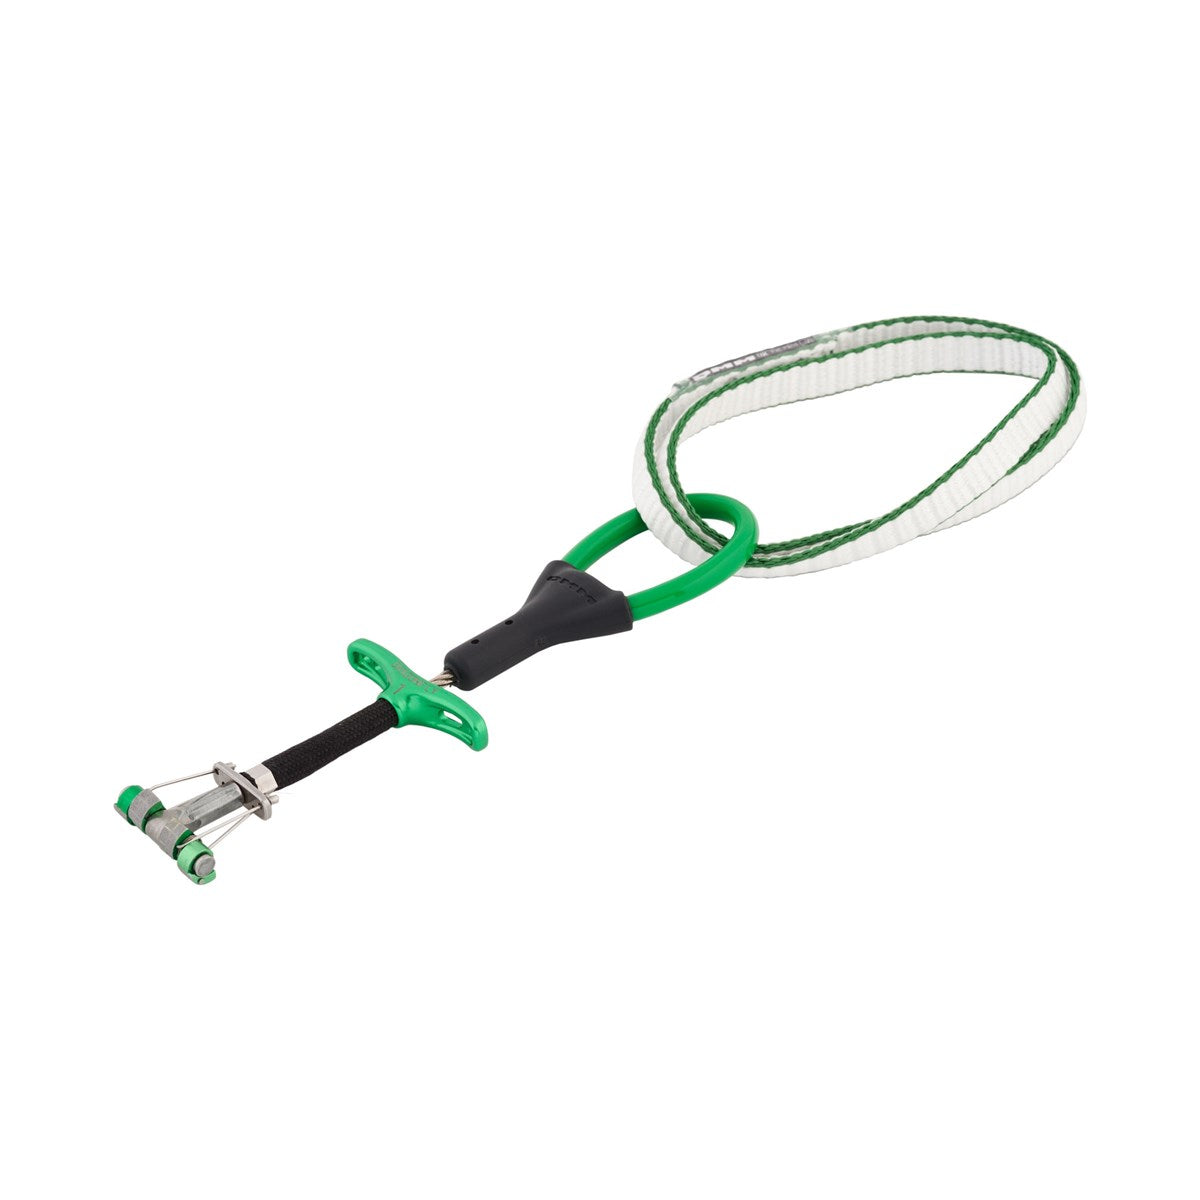 DMM Dragonfly Cam Size 1, in Green colour